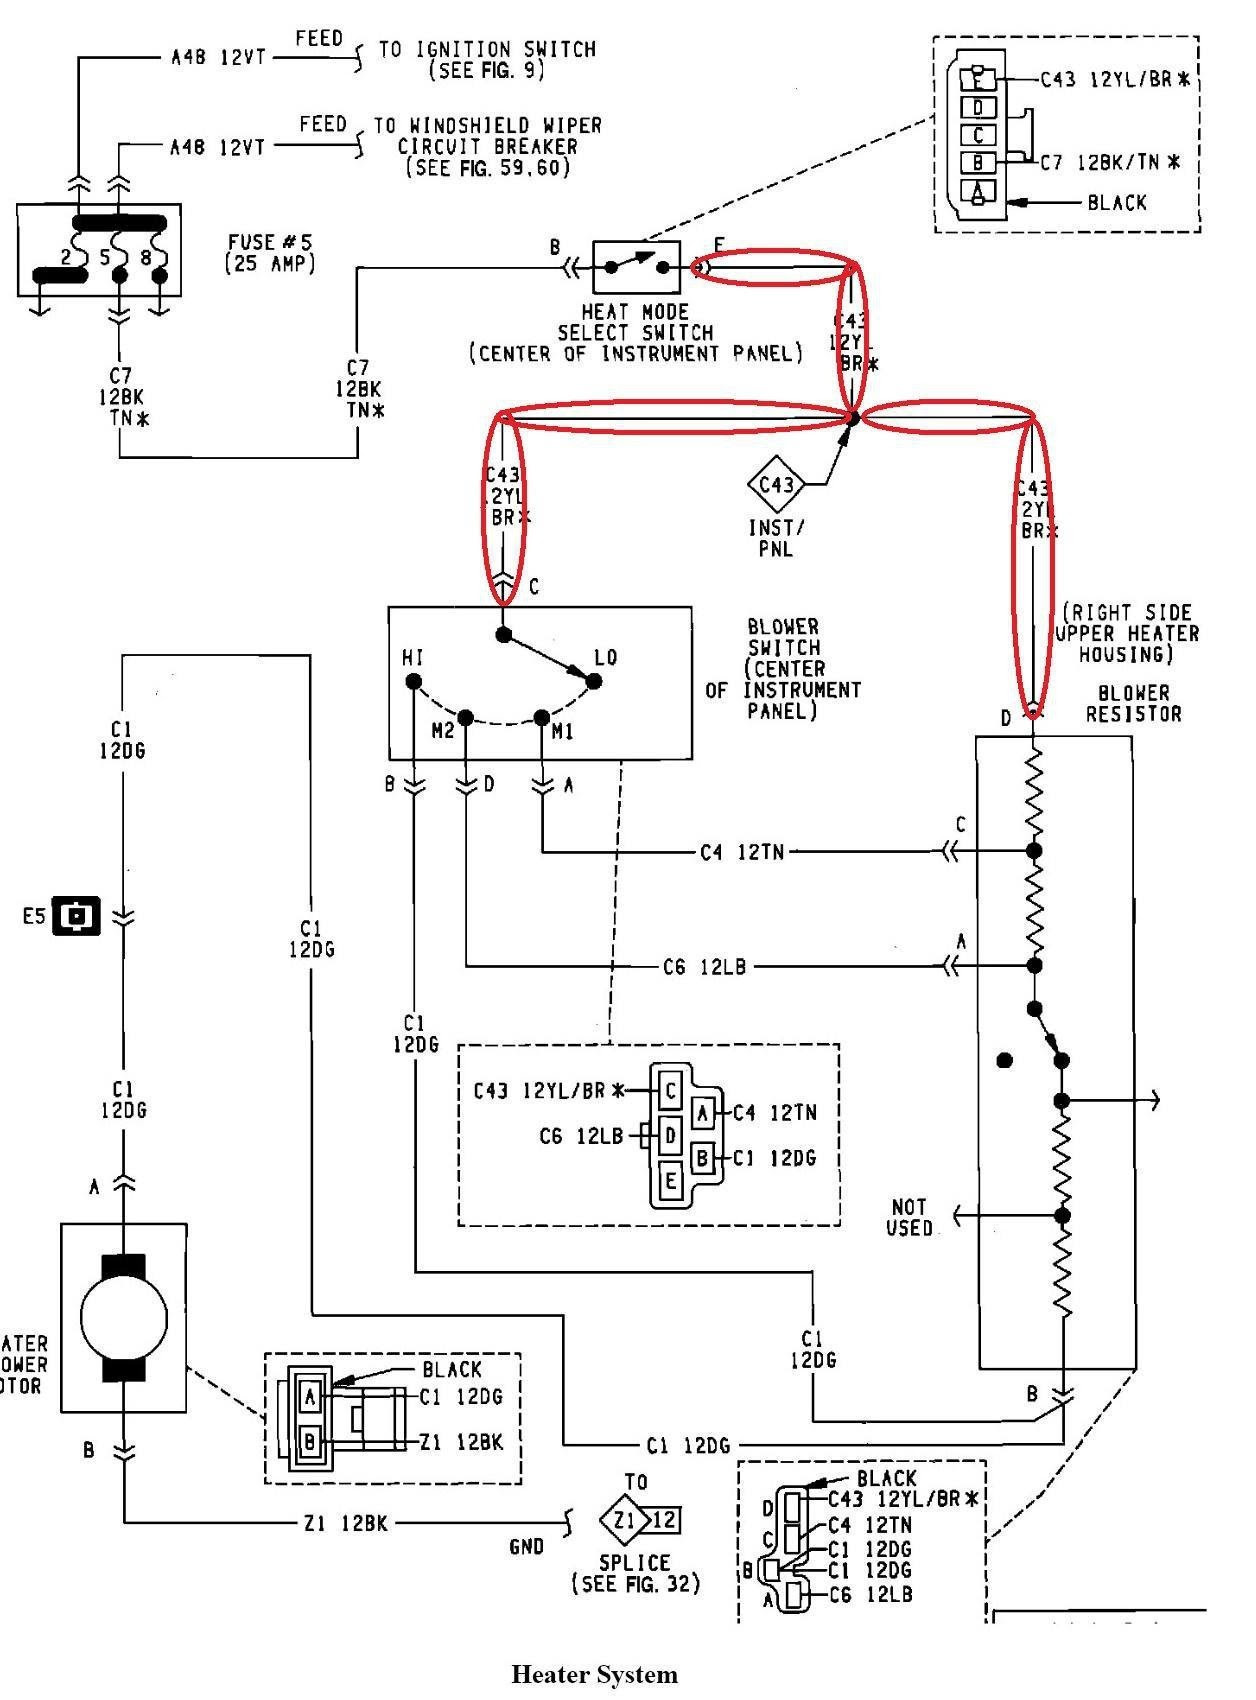 1994 95 Ezgo Wiring Diagram FULL HD Version Wiring Diagram -  JURY-DIAGRAMBASE.ROMANIATV.ITDiagram Database And Images - romaniatv.it